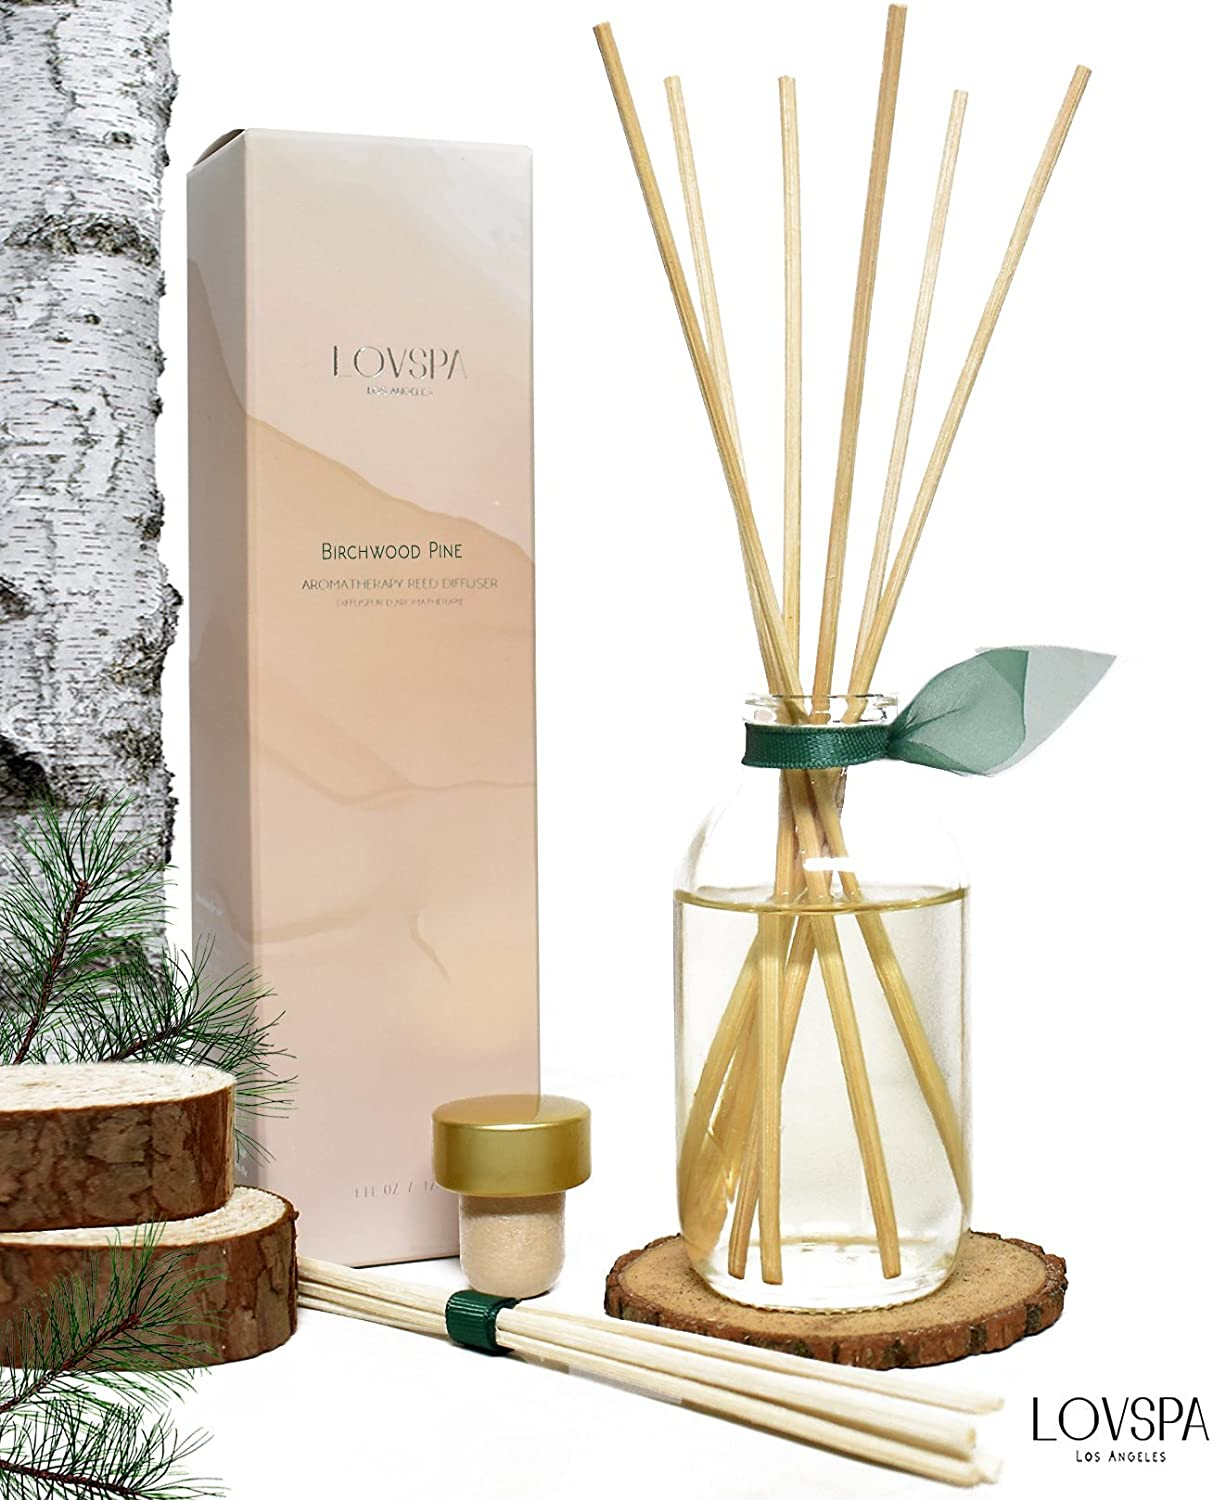 LOVSPA Birchwood Pine Reed Diffuser Set Wood Slice Coaster | White Pine, Fir Balsam, Birchwood & Amber Fragrance Notes | Woodsy Rustic Decor w/Scented Sticks | Great Gift Idea Men!